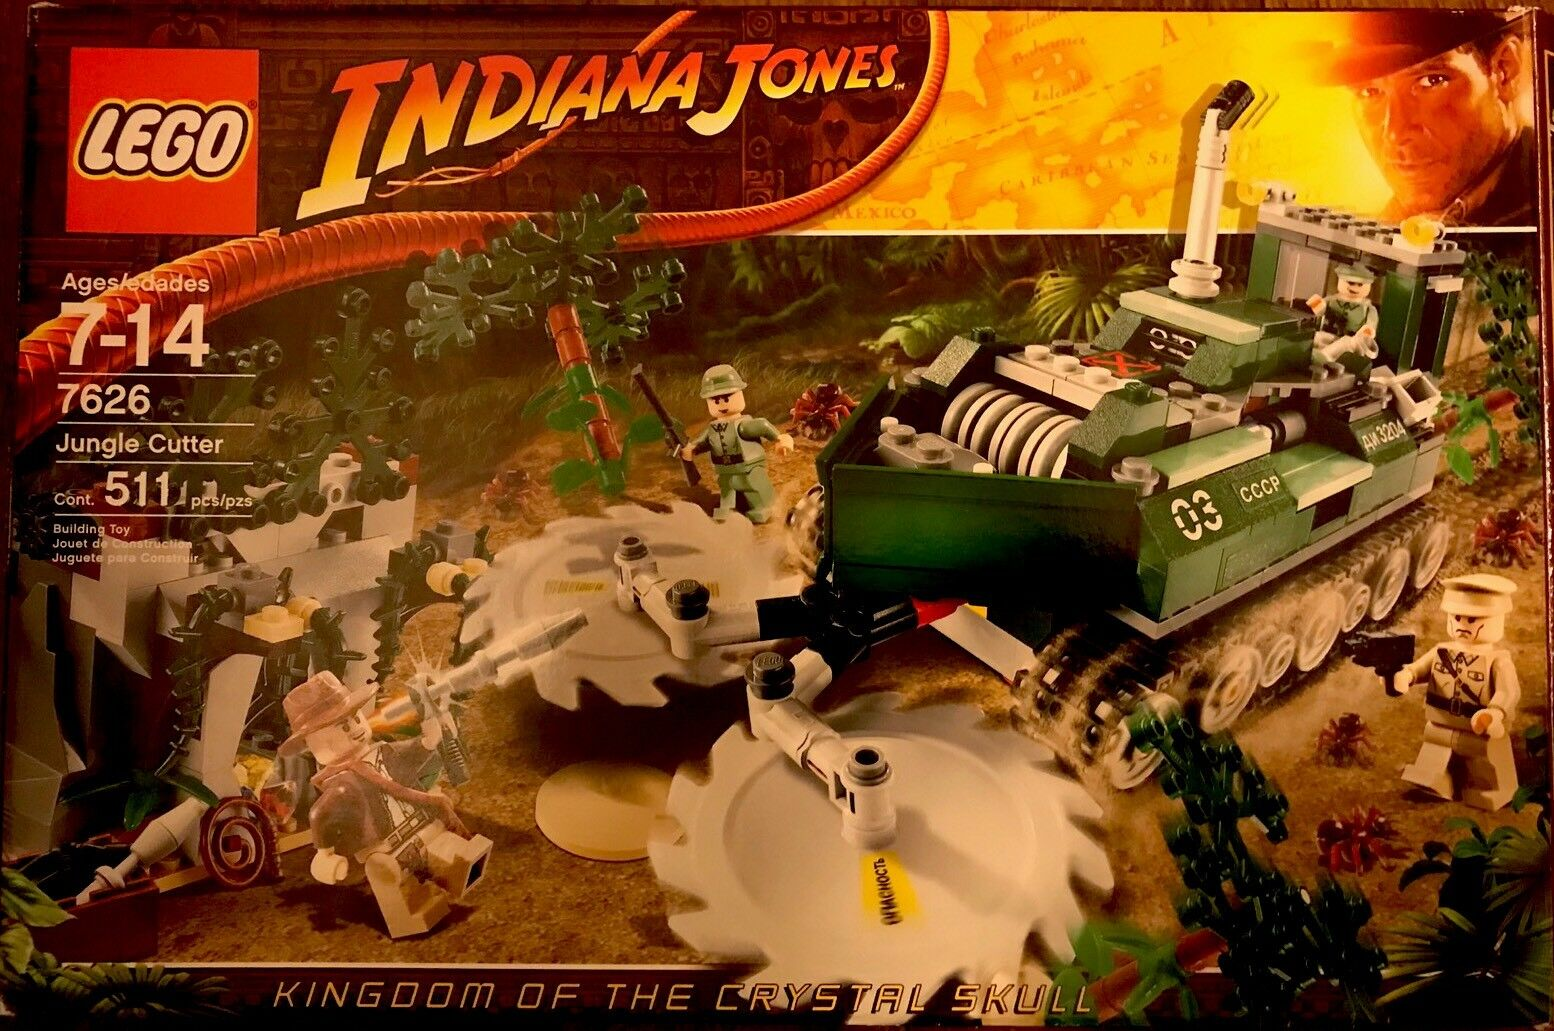 Indiana  Jones™ LEGO The Jungle Cutter (Russian Convoy) 7626 RETIrosso SET  shopping online e negozio di moda